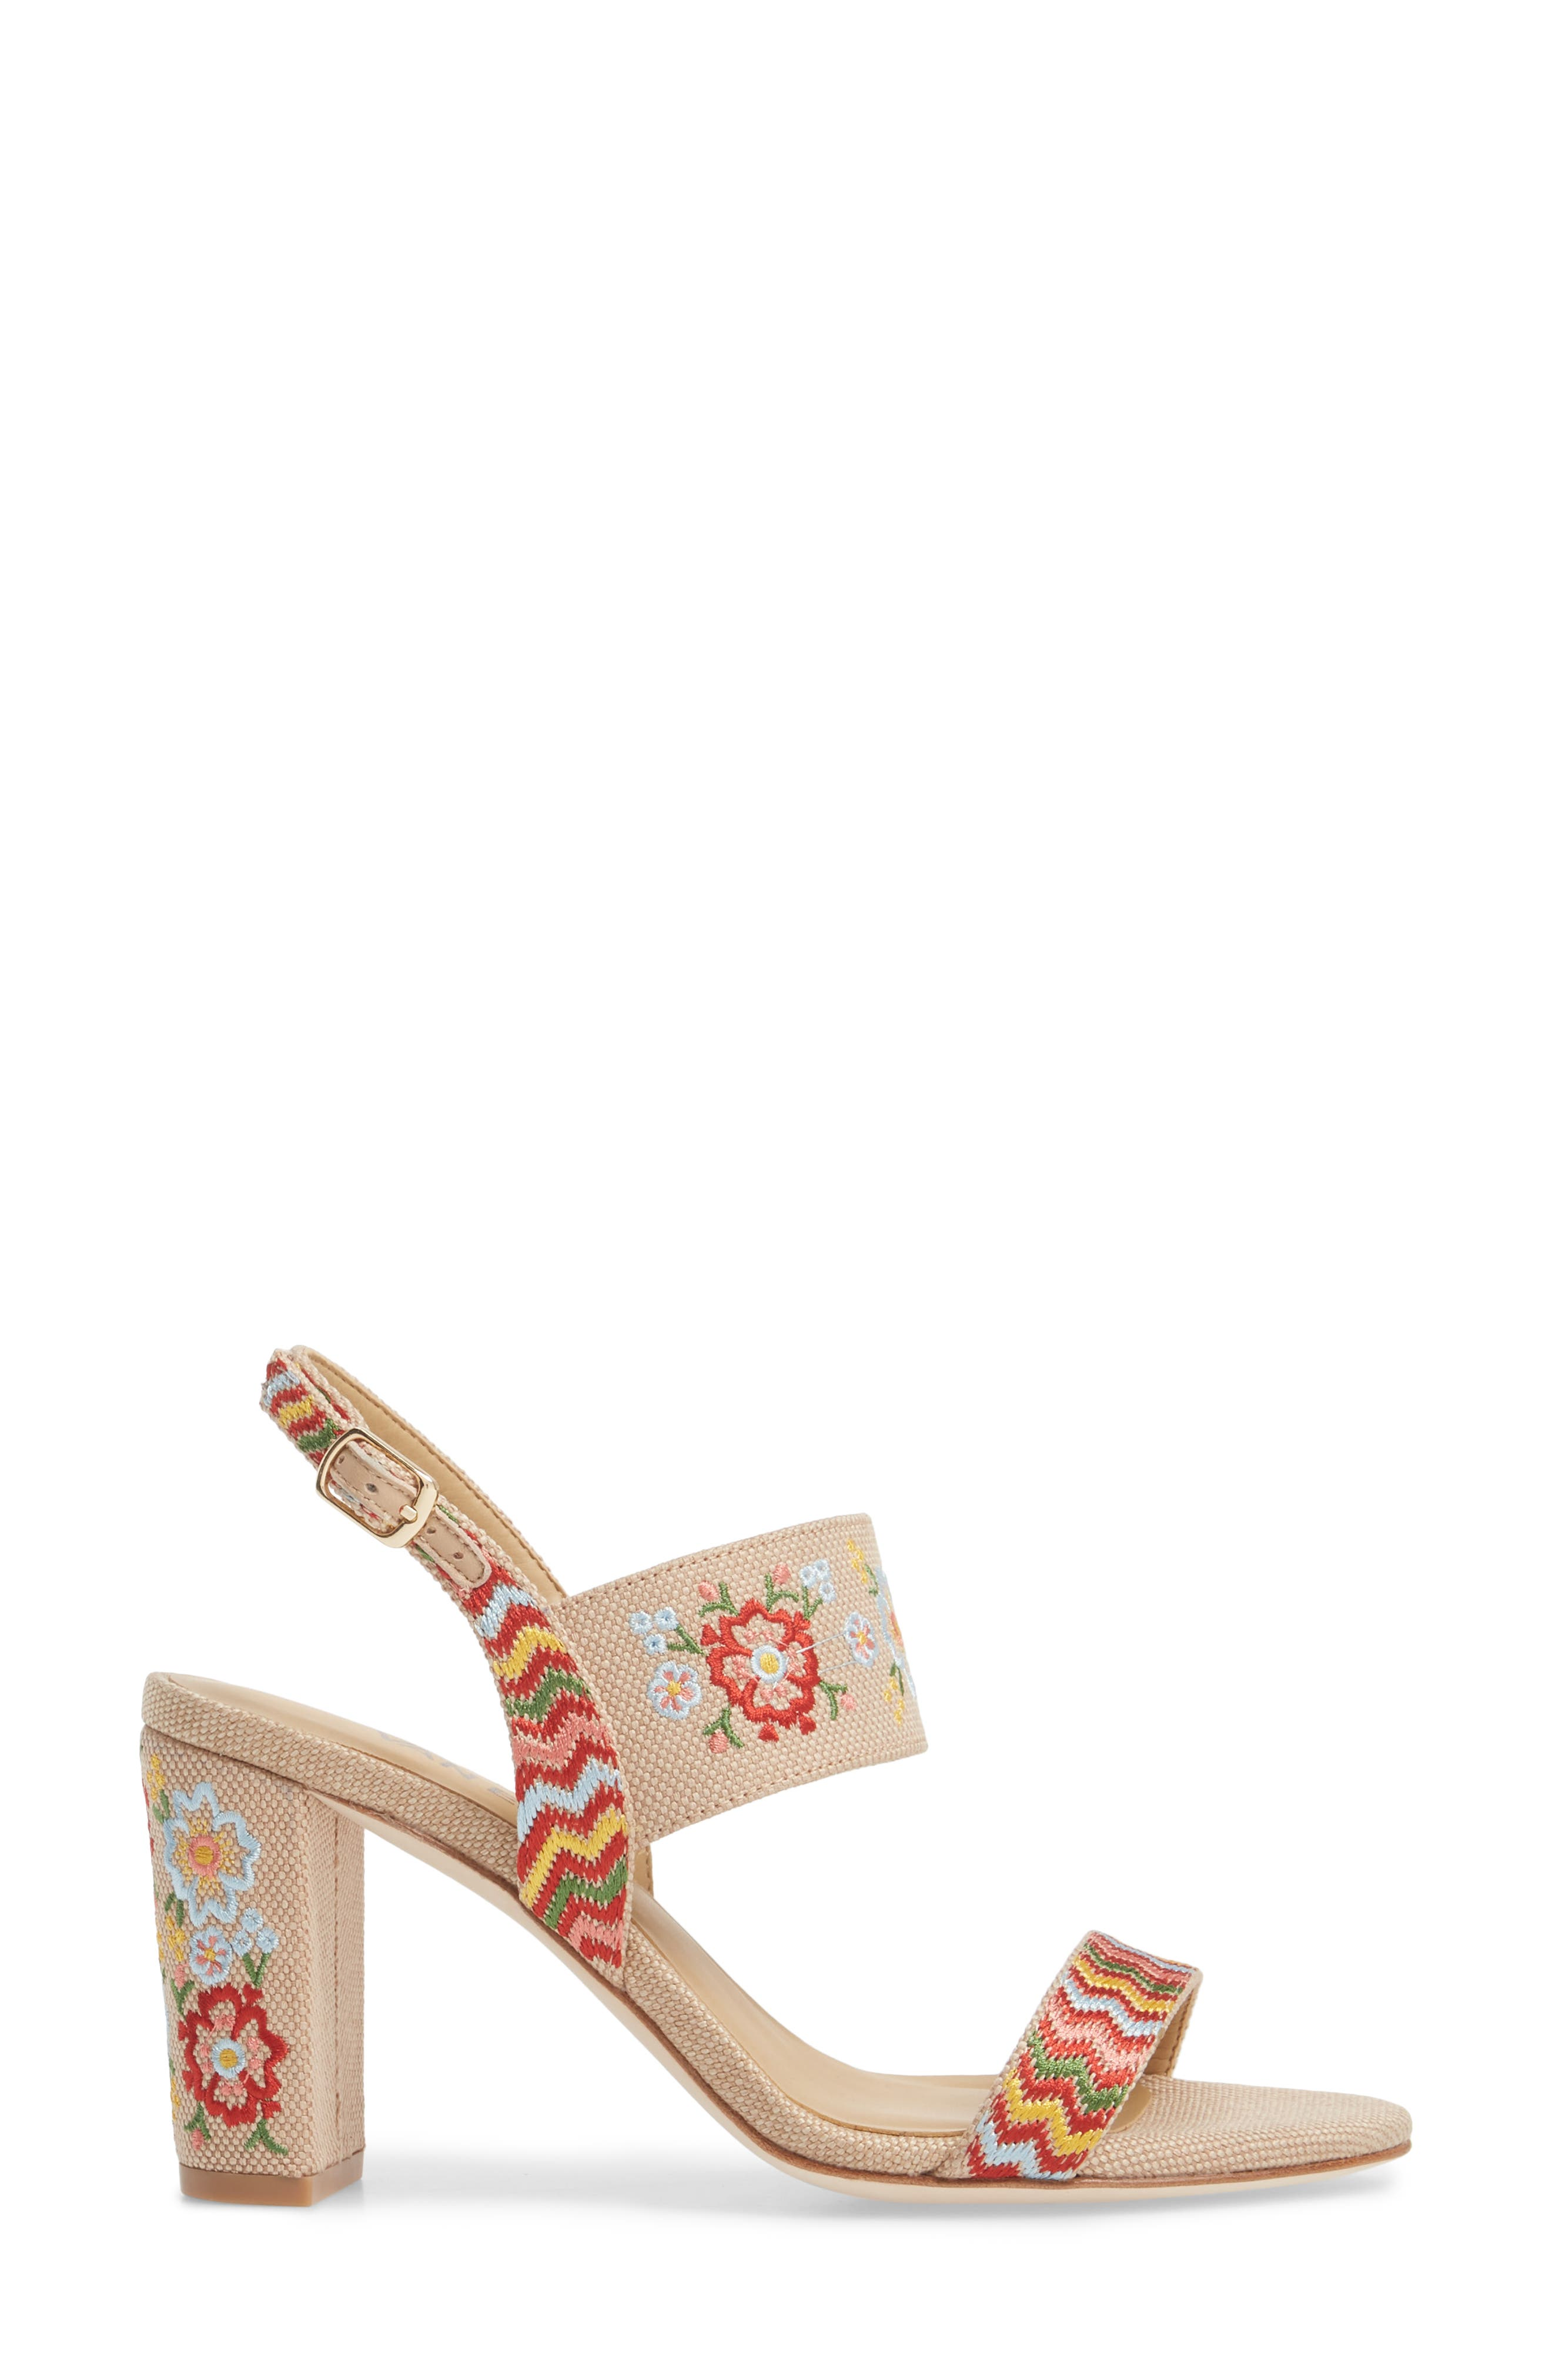 Biene Slingback Sandal,                             Alternate thumbnail 3, color,                             Natural Linen Fabric